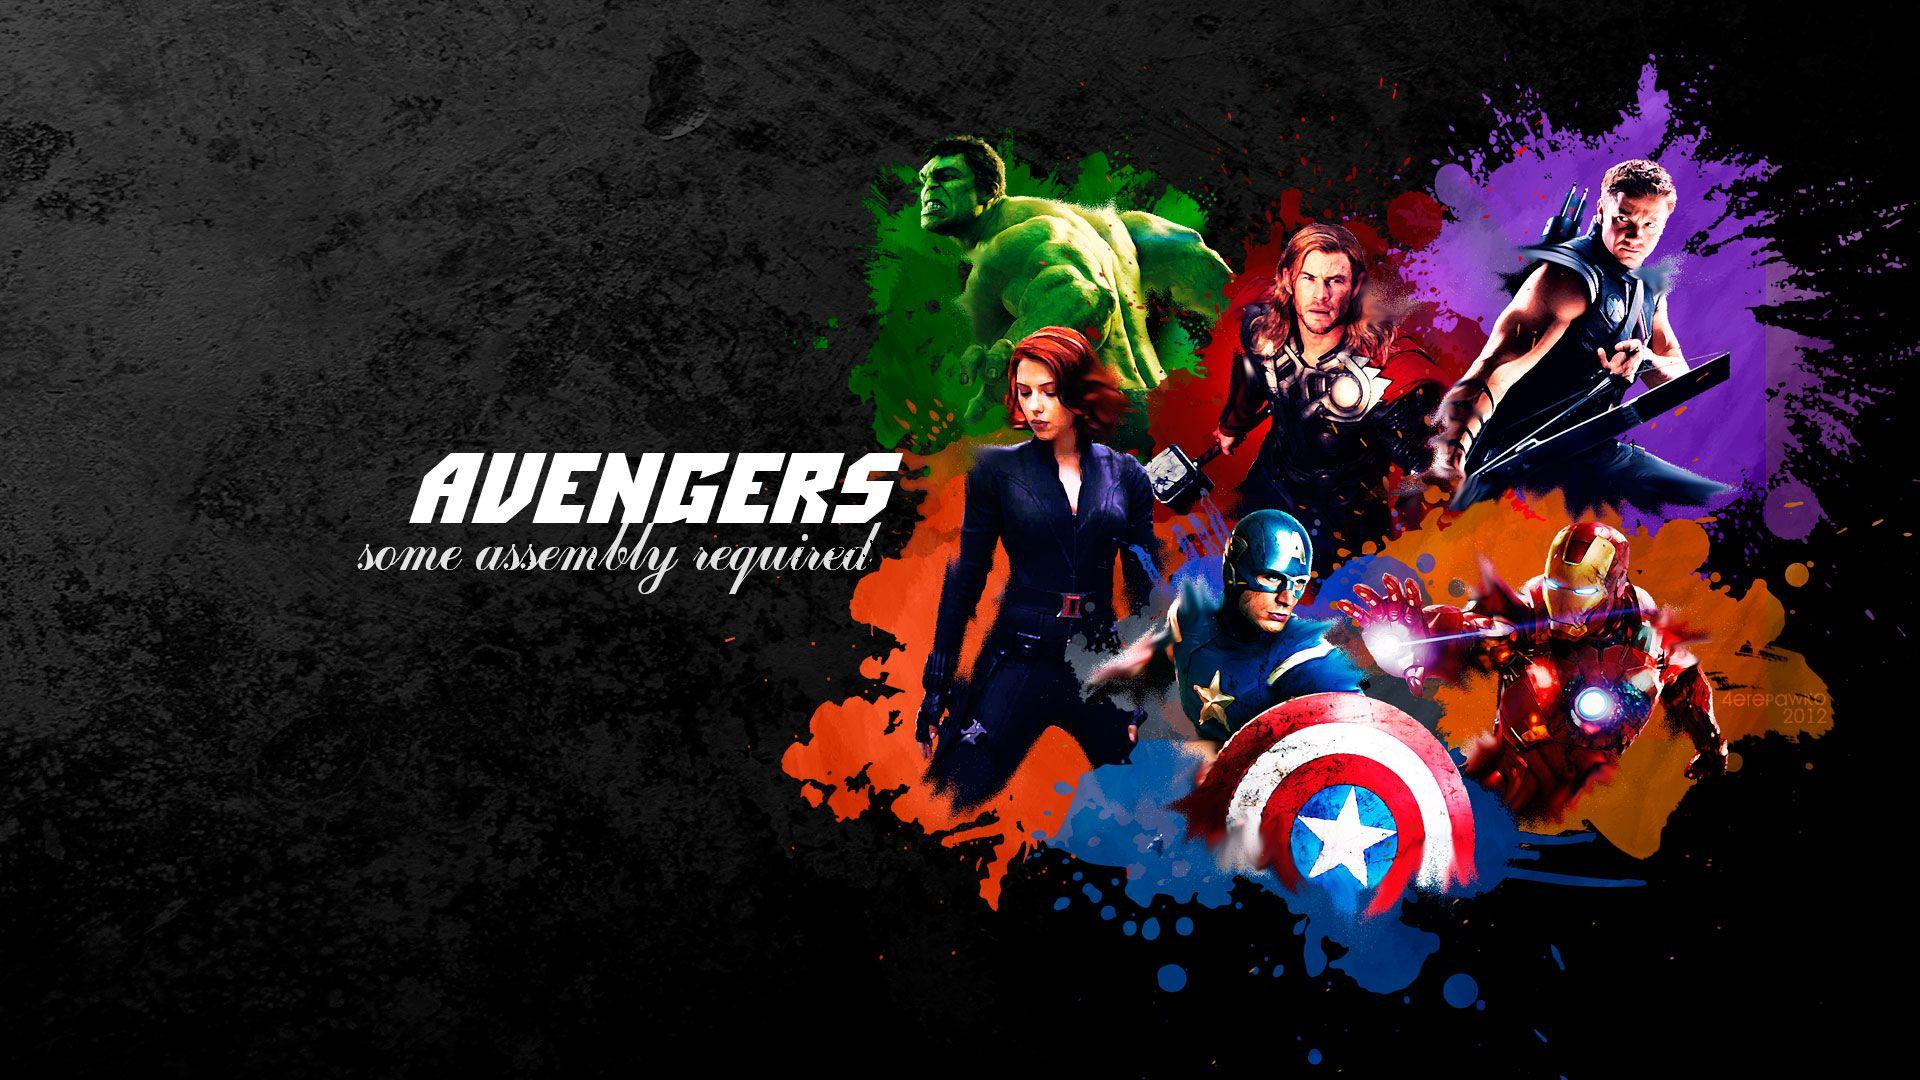 The Avengers image The Avengers HD wallpapers and backgrounds photos